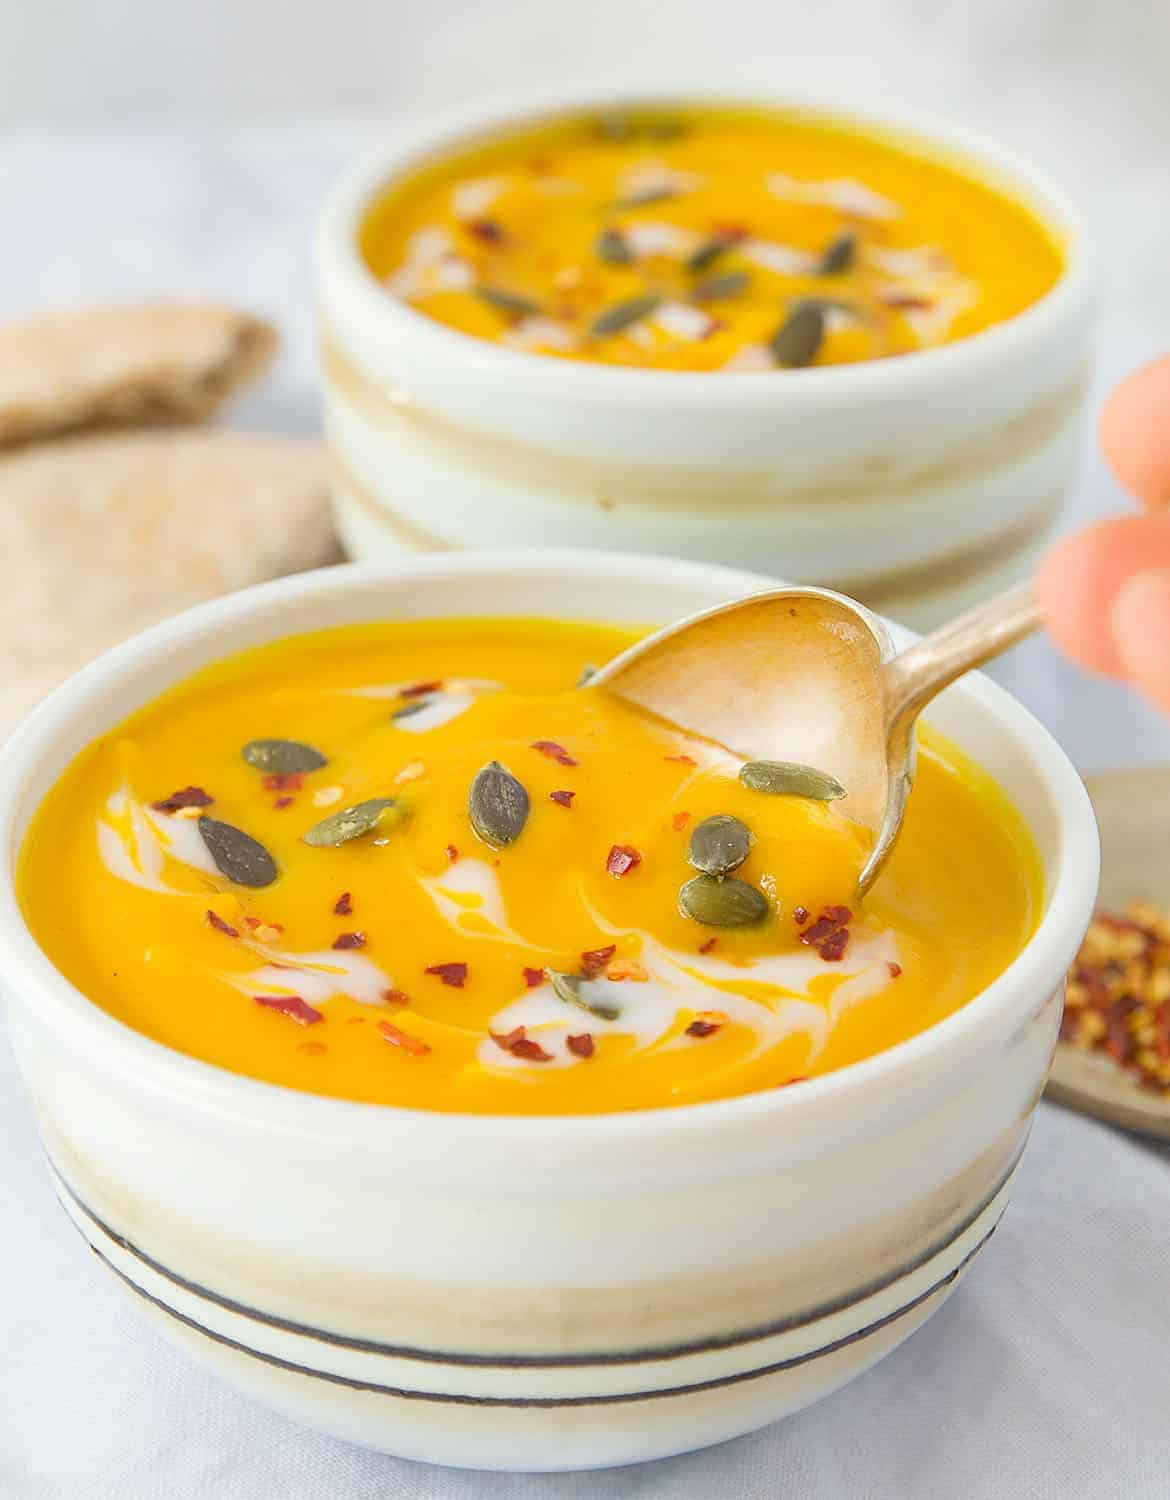 Two bowls full of pumpkin and carrot soup - The Clever Meal